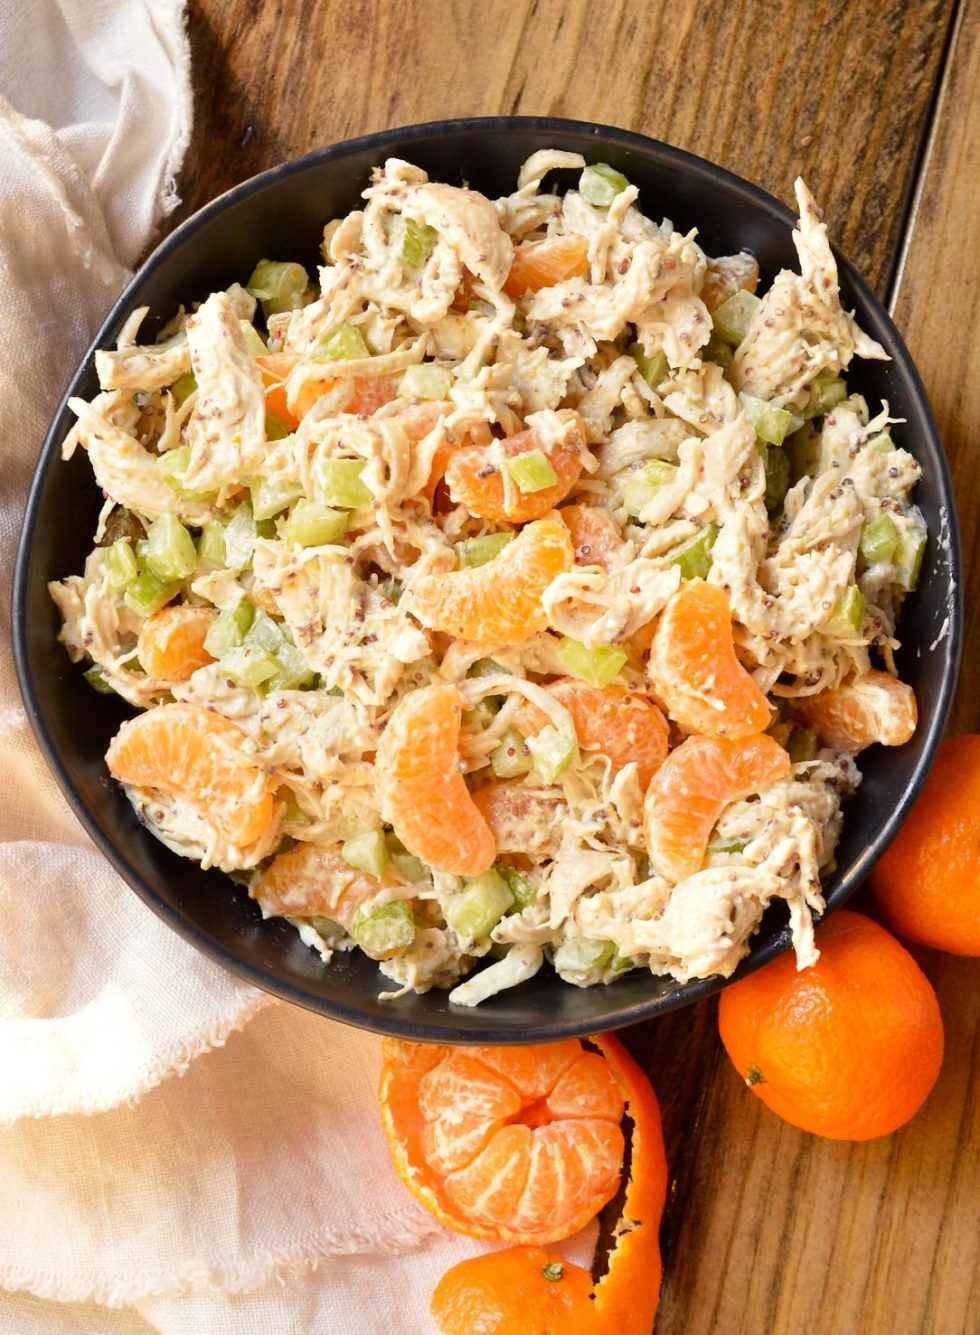 Take a break from boring old chicken salad and make this Mandarin Orange Chicken Salad Recipe. The tangy dijon mustard and sweet mandarin oranges take this chicken salad to the next level! With just 5 ingredients this makes a great nutritious lunch or dinner and can be made into a Whole30 compliant recipe. #whole30recipes #paleorecipes #chickensaladrecipe #mandarinchicken